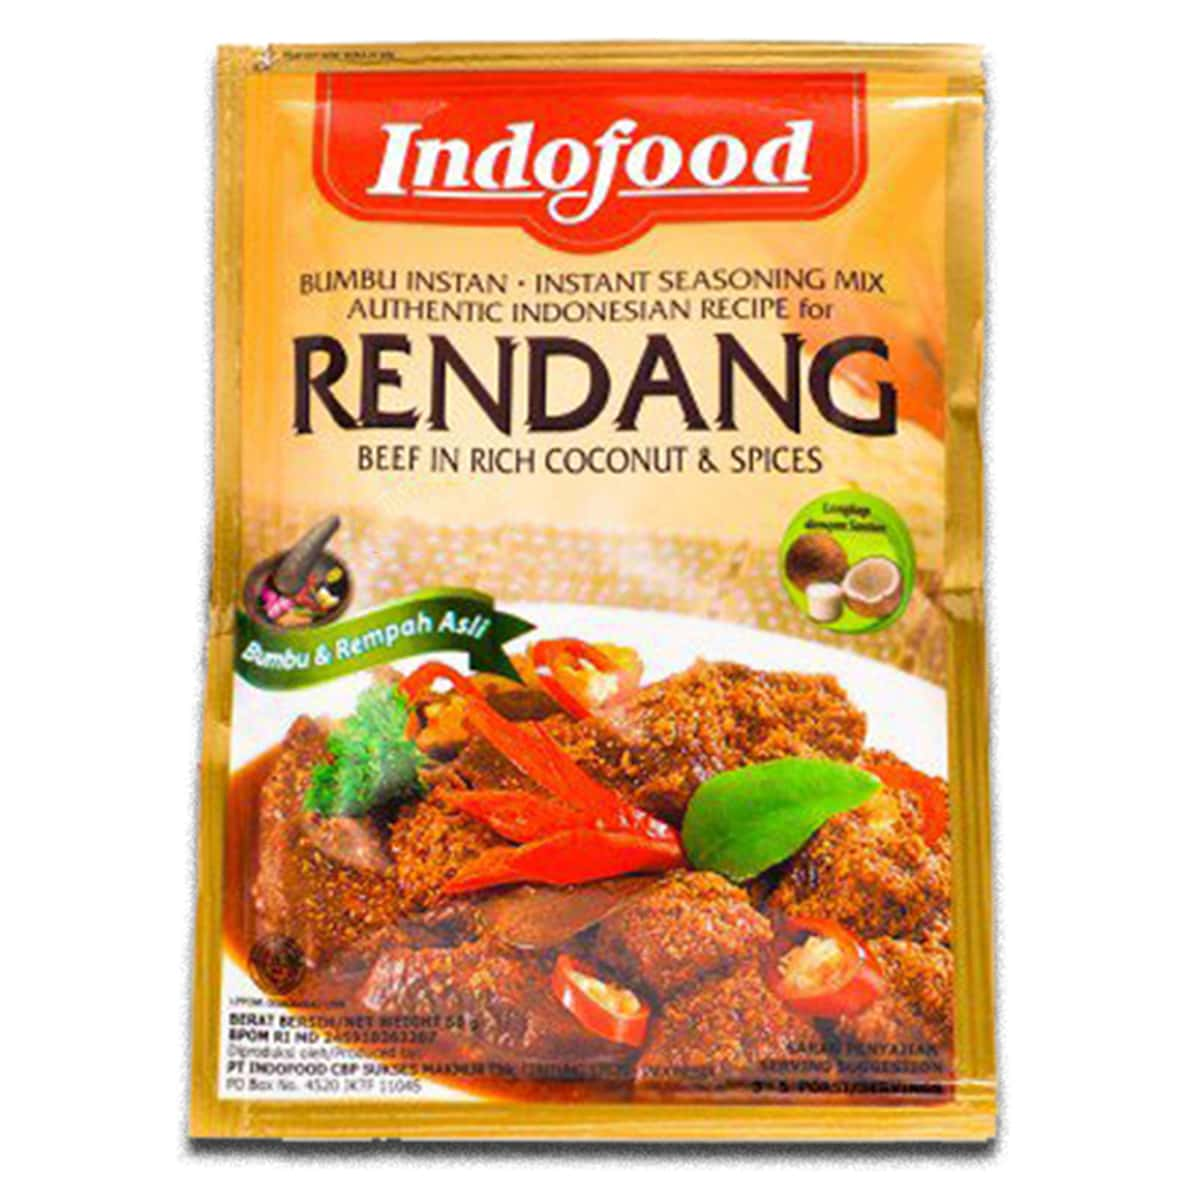 Buy Indofood Rendang (Beef in Rich Coconut and Spices) - 50 gm